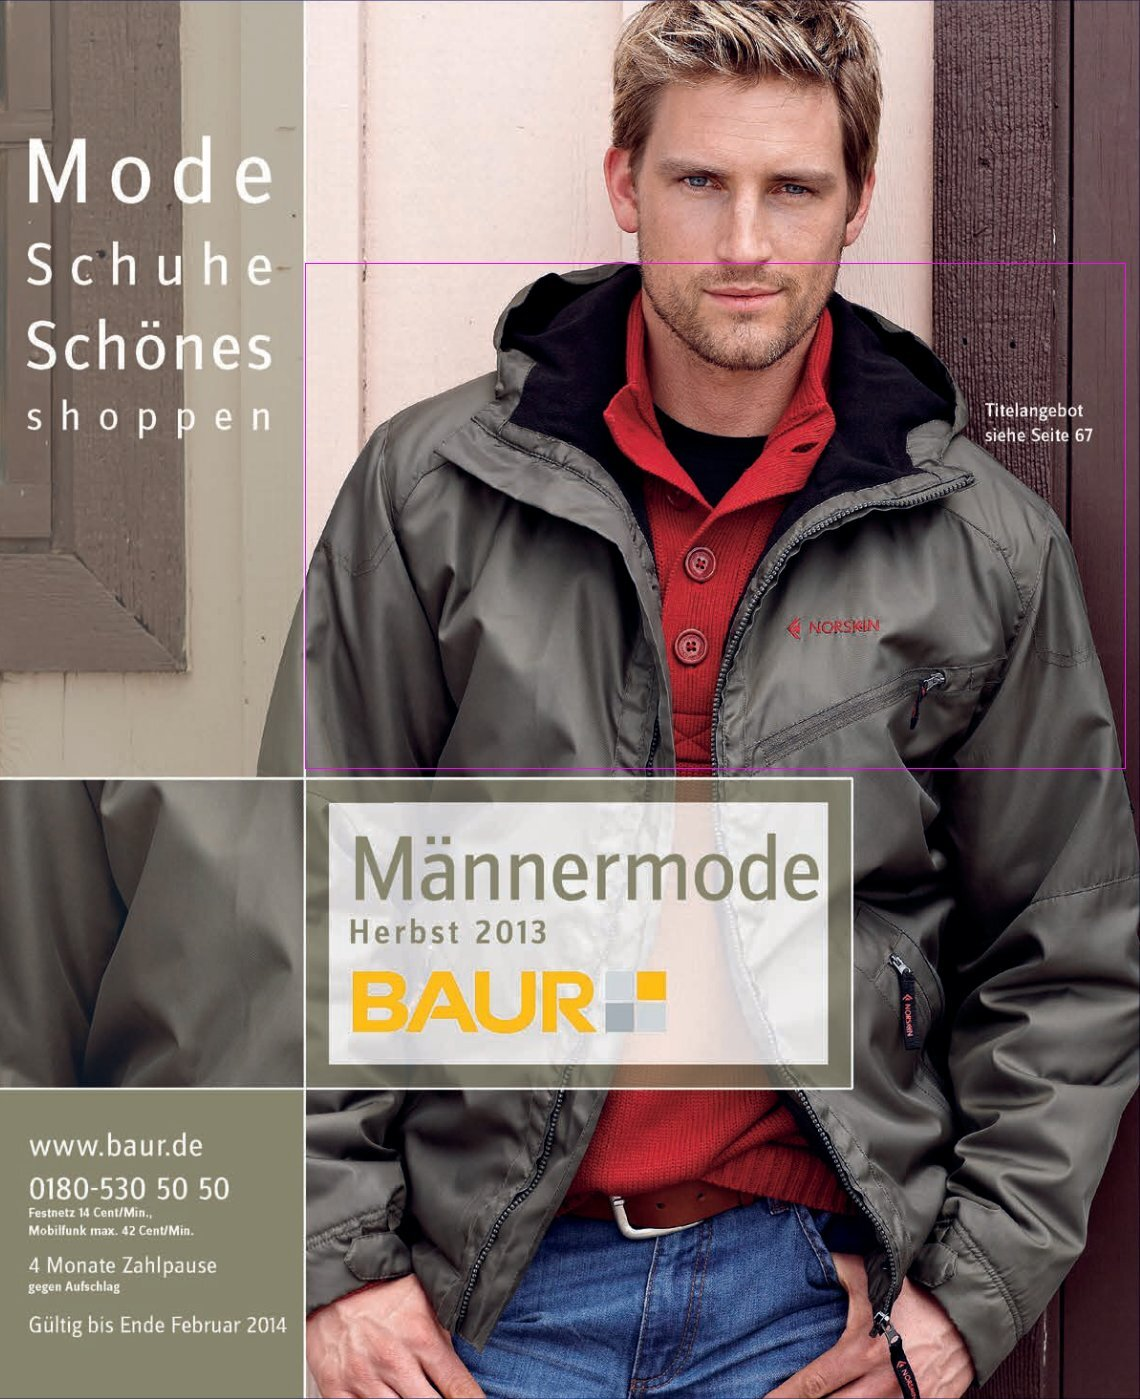 finest selection 7bd5c 6d2b0 3 free Magazines from BAUR.VERSAND